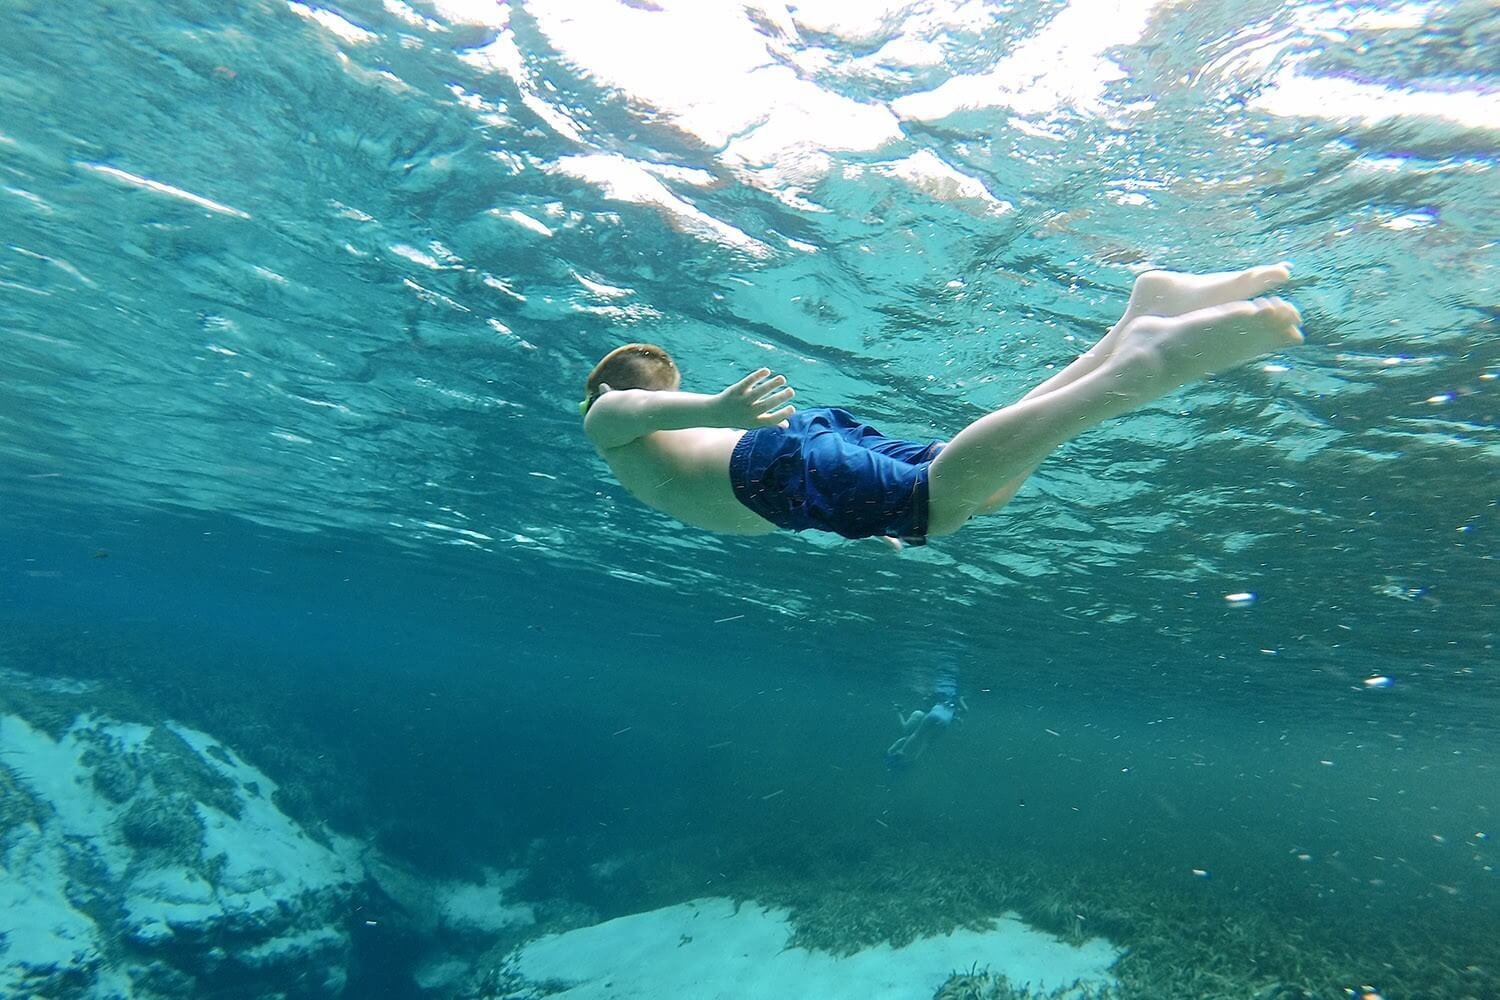 A boy takes a dive into the clear waters of Alexander Springs.